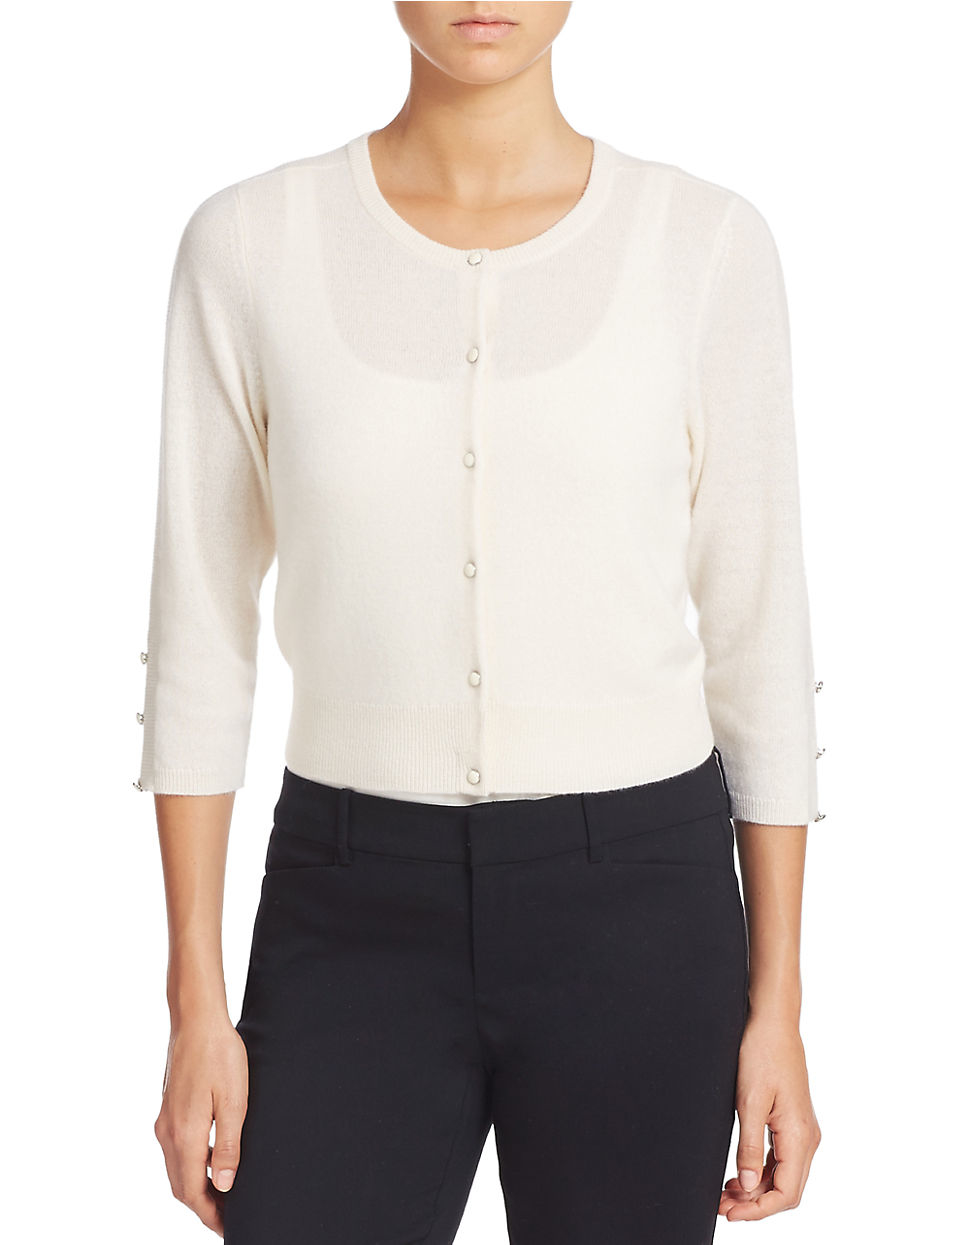 Lord & taylor Cropped Cashmere Cardigan in White | Lyst